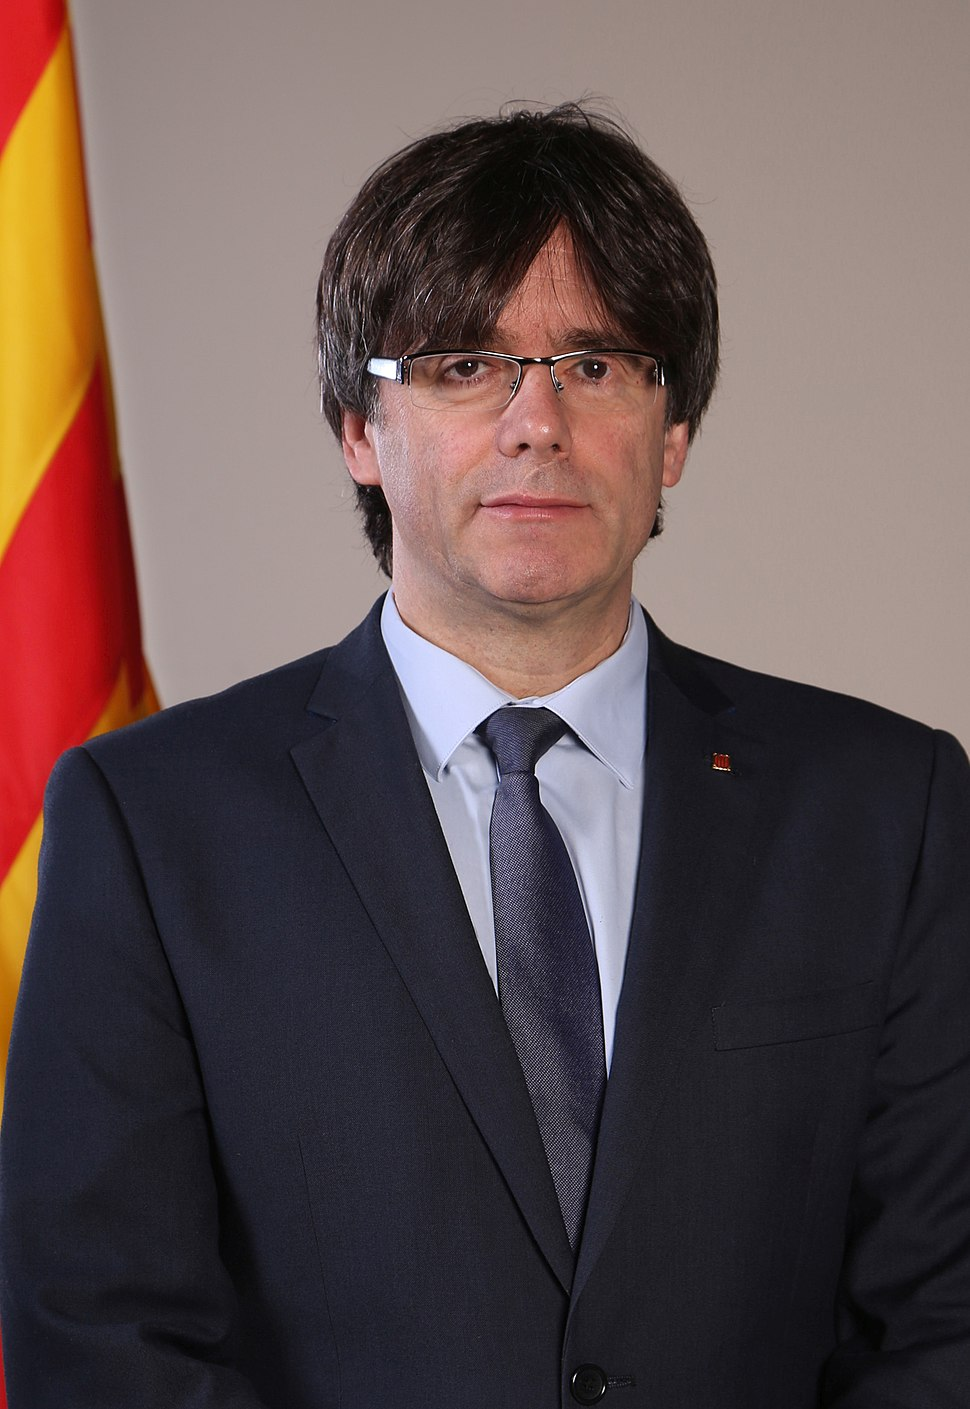 Retrat oficial del President Carles Puigdemont cropped